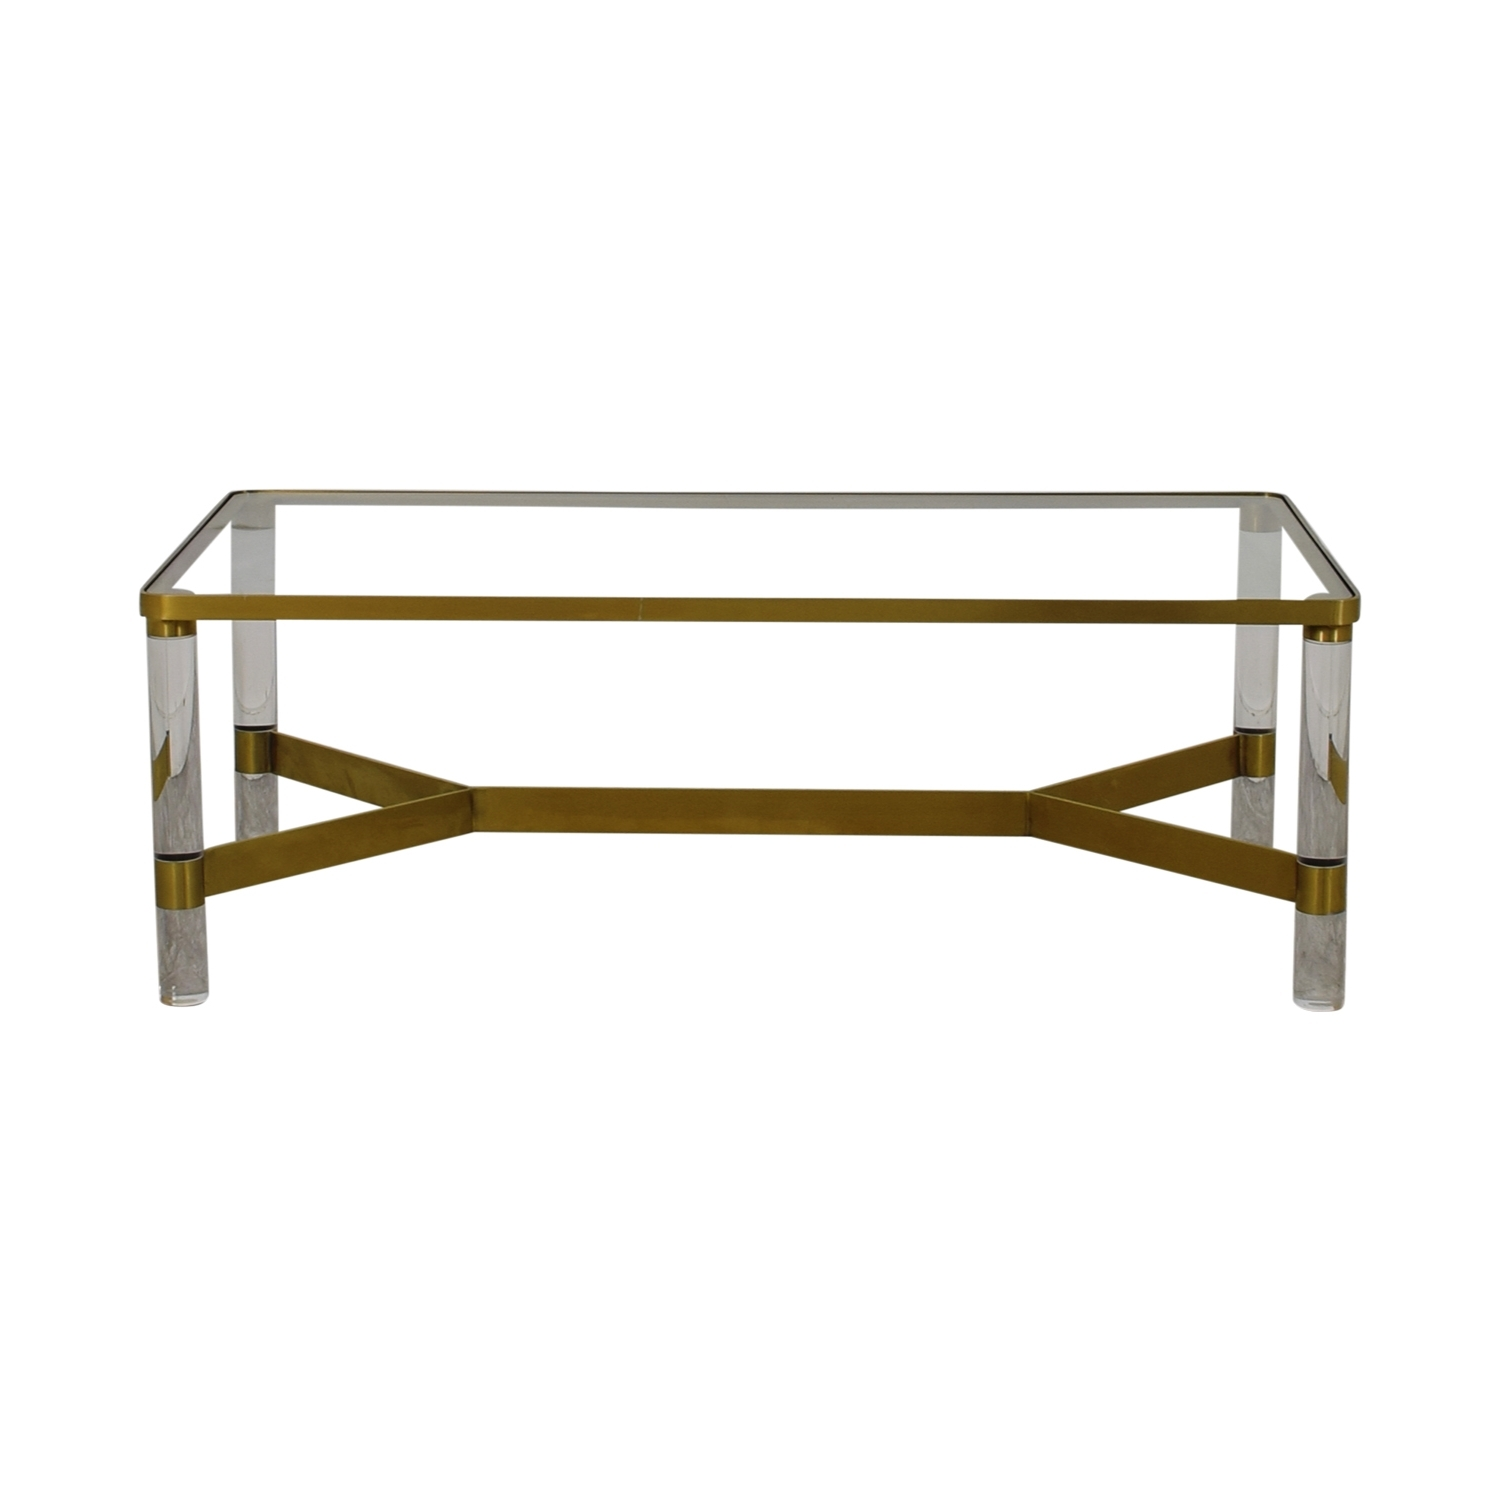 [%most Up To Date Acrylic Glass And Brass Coffee Tables Intended For 67% Off – Anthropologie Anthropologie Oscarine Glass Acrylic & Brass 67% Off – Anthropologie Anthropologie Oscarine Glass Acrylic & Brass Inside Most Current Acrylic Glass And Brass Coffee Tables%] (View 8 of 20)